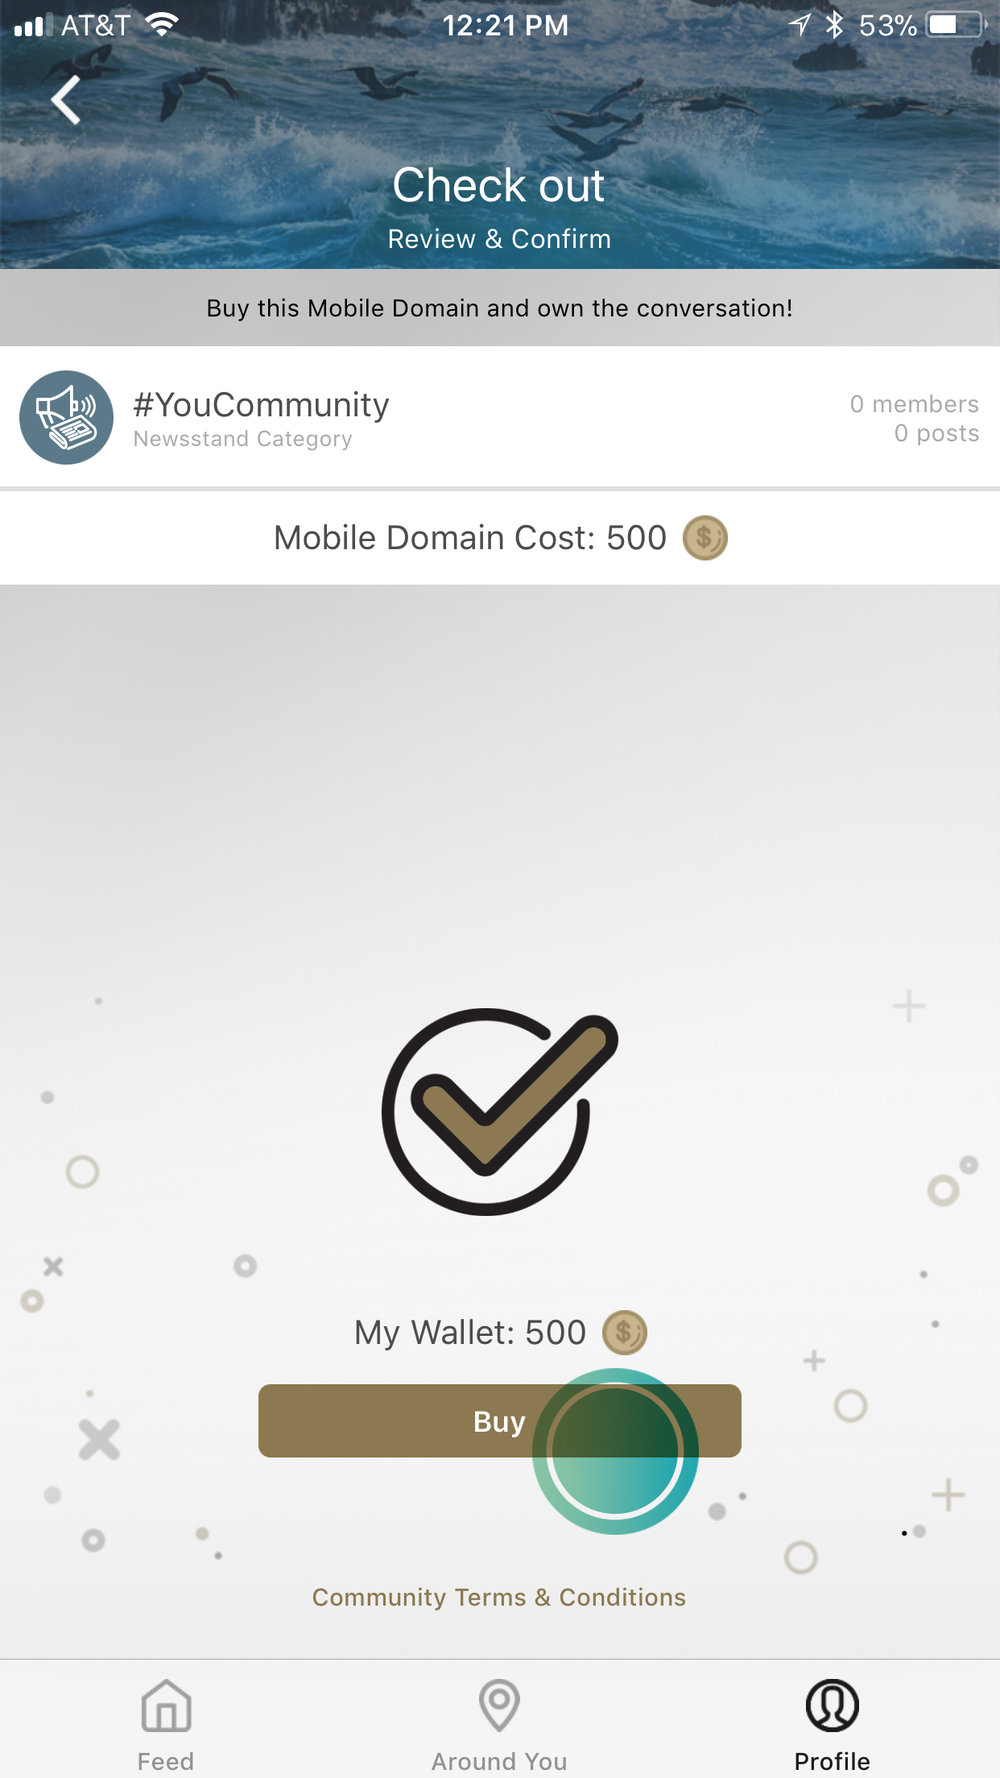 6. Confirm and Buy -